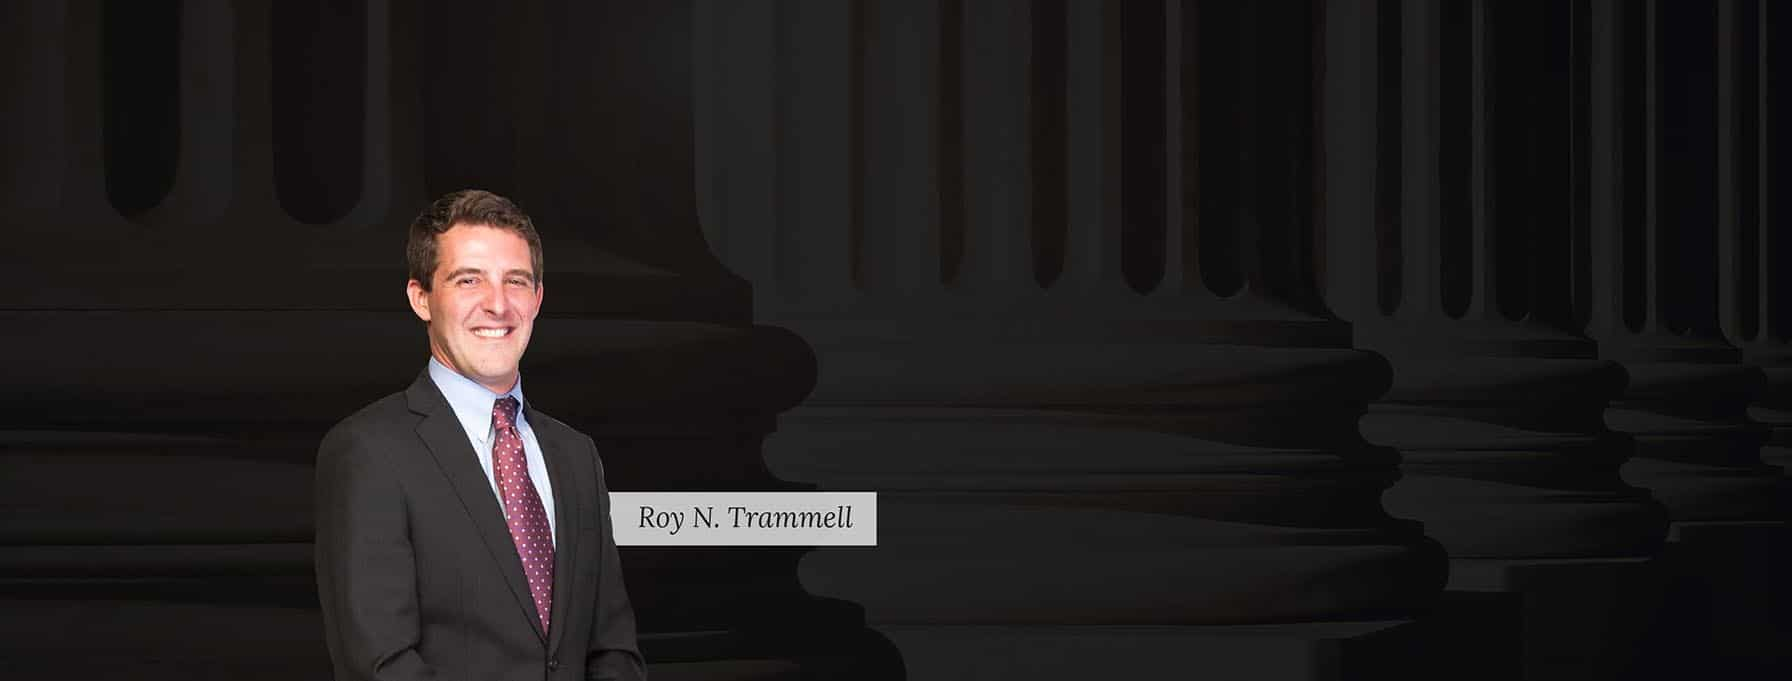 Roy Trammell - Trammell & Mills Law Firm in Anderson, SC